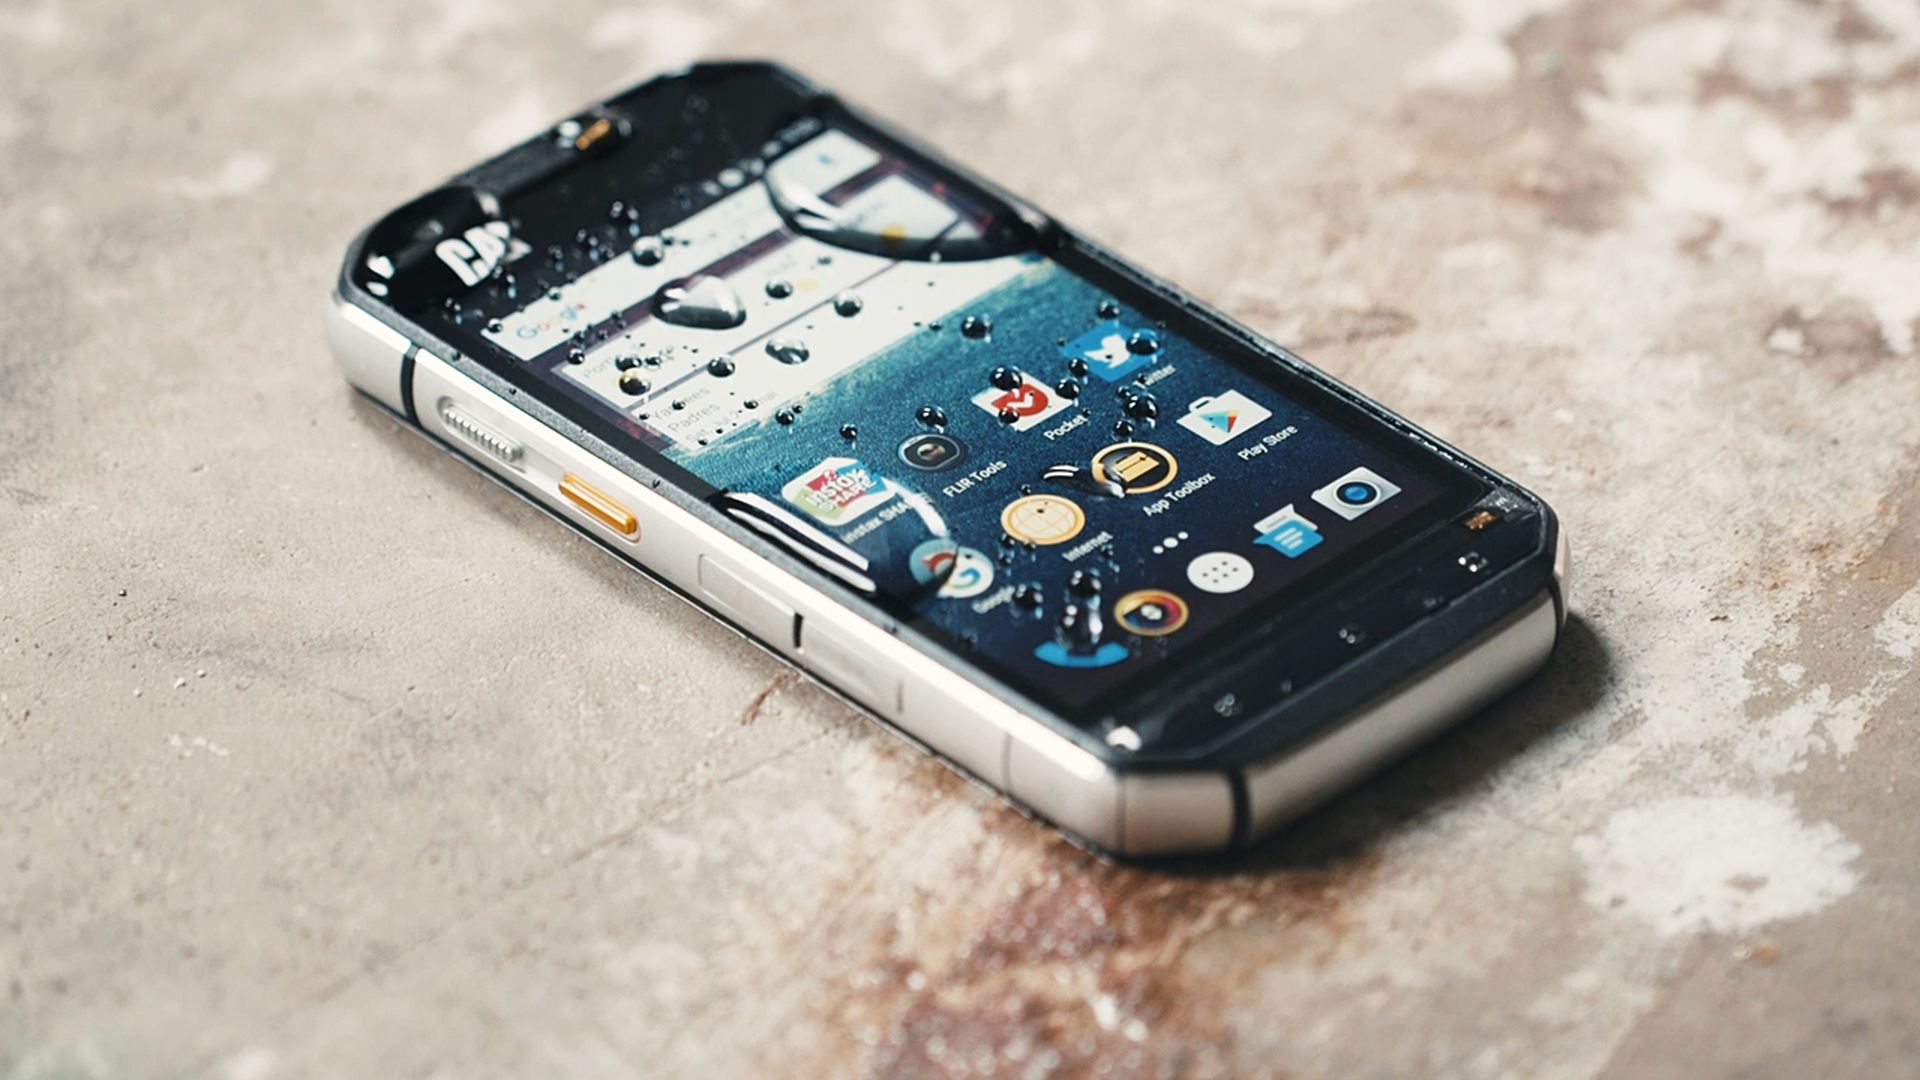 Cat S60 Review A Rugged Phone That Can See In The Dark Verge Waterproof Mobile Circuit Boards